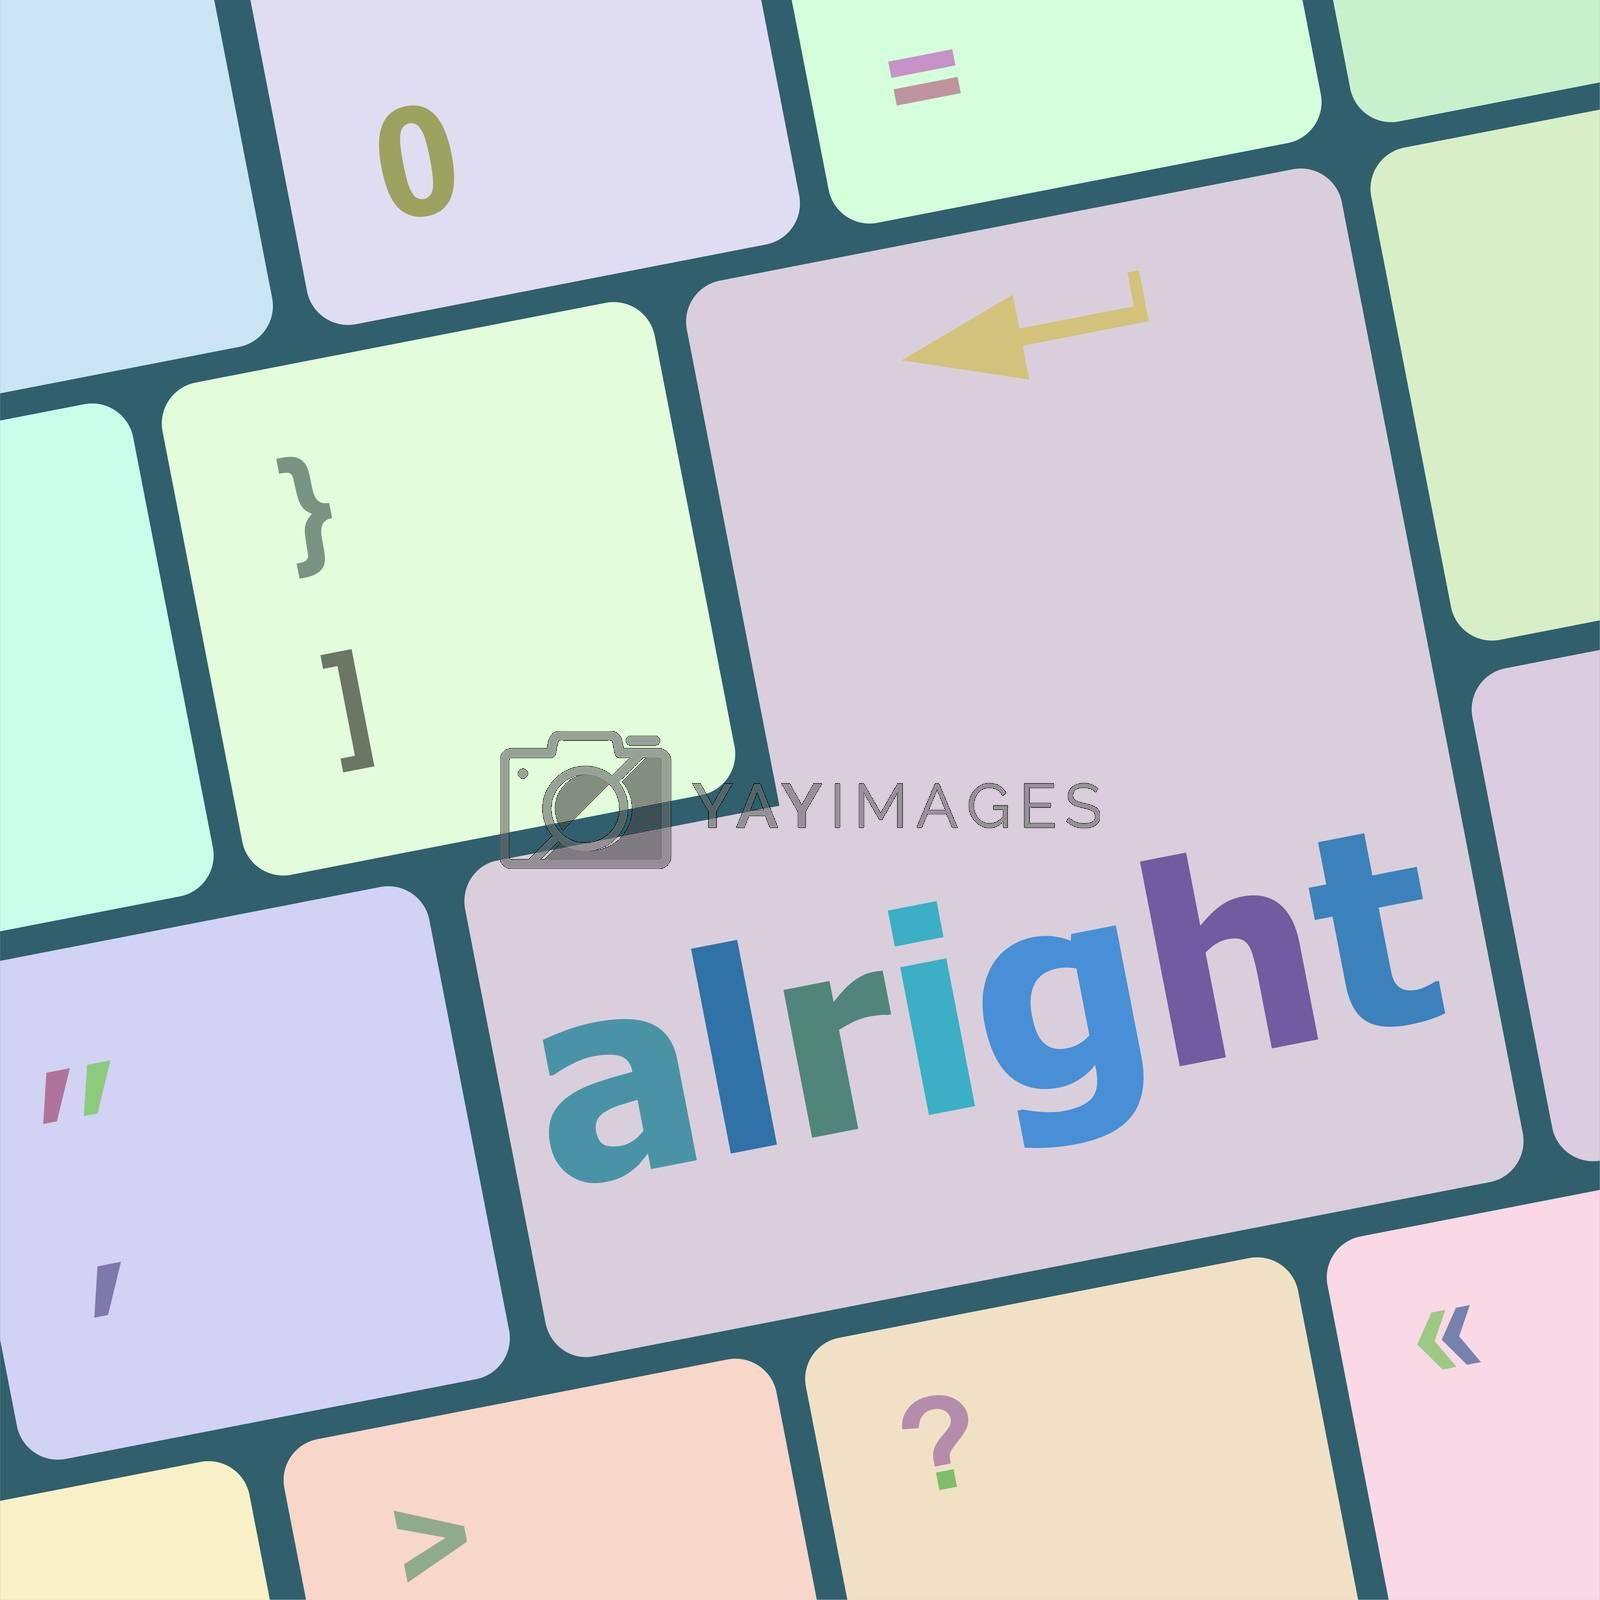 Computer keyboard button with alright word on it